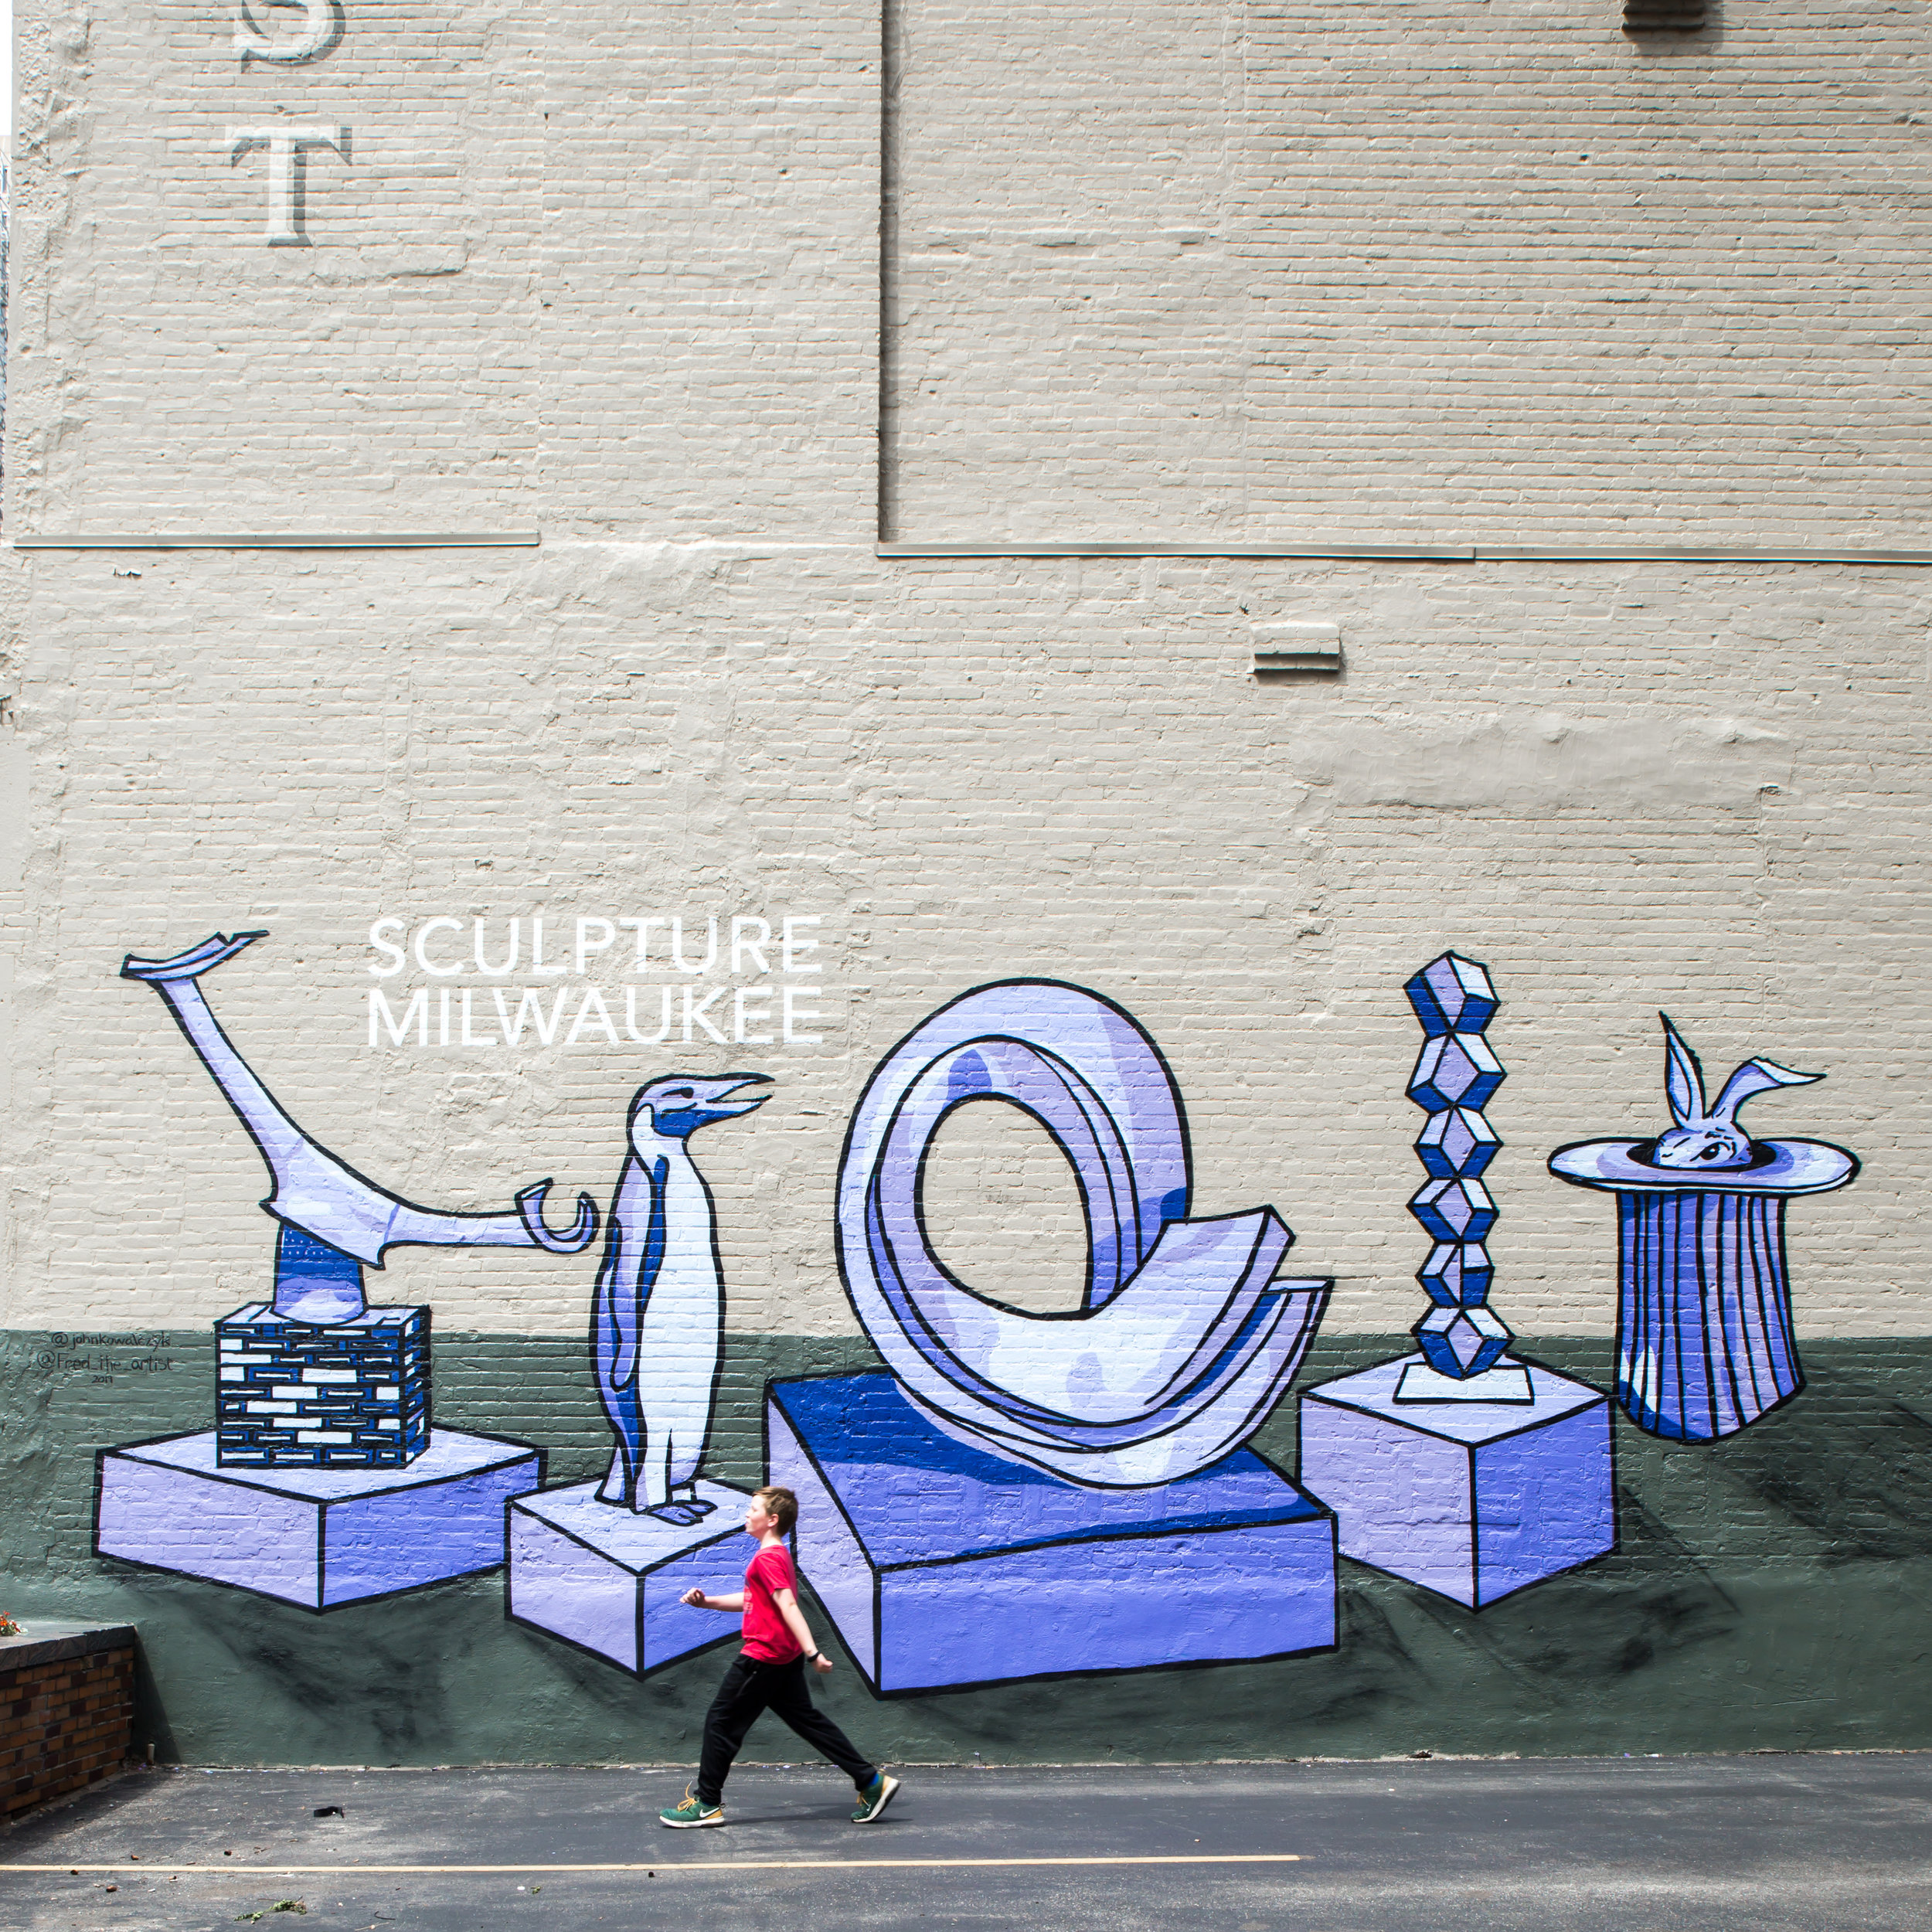 """Striding by the """"Sculpture Milwaukee"""" Mural by John Kowalczyk and Fred The Artists"""